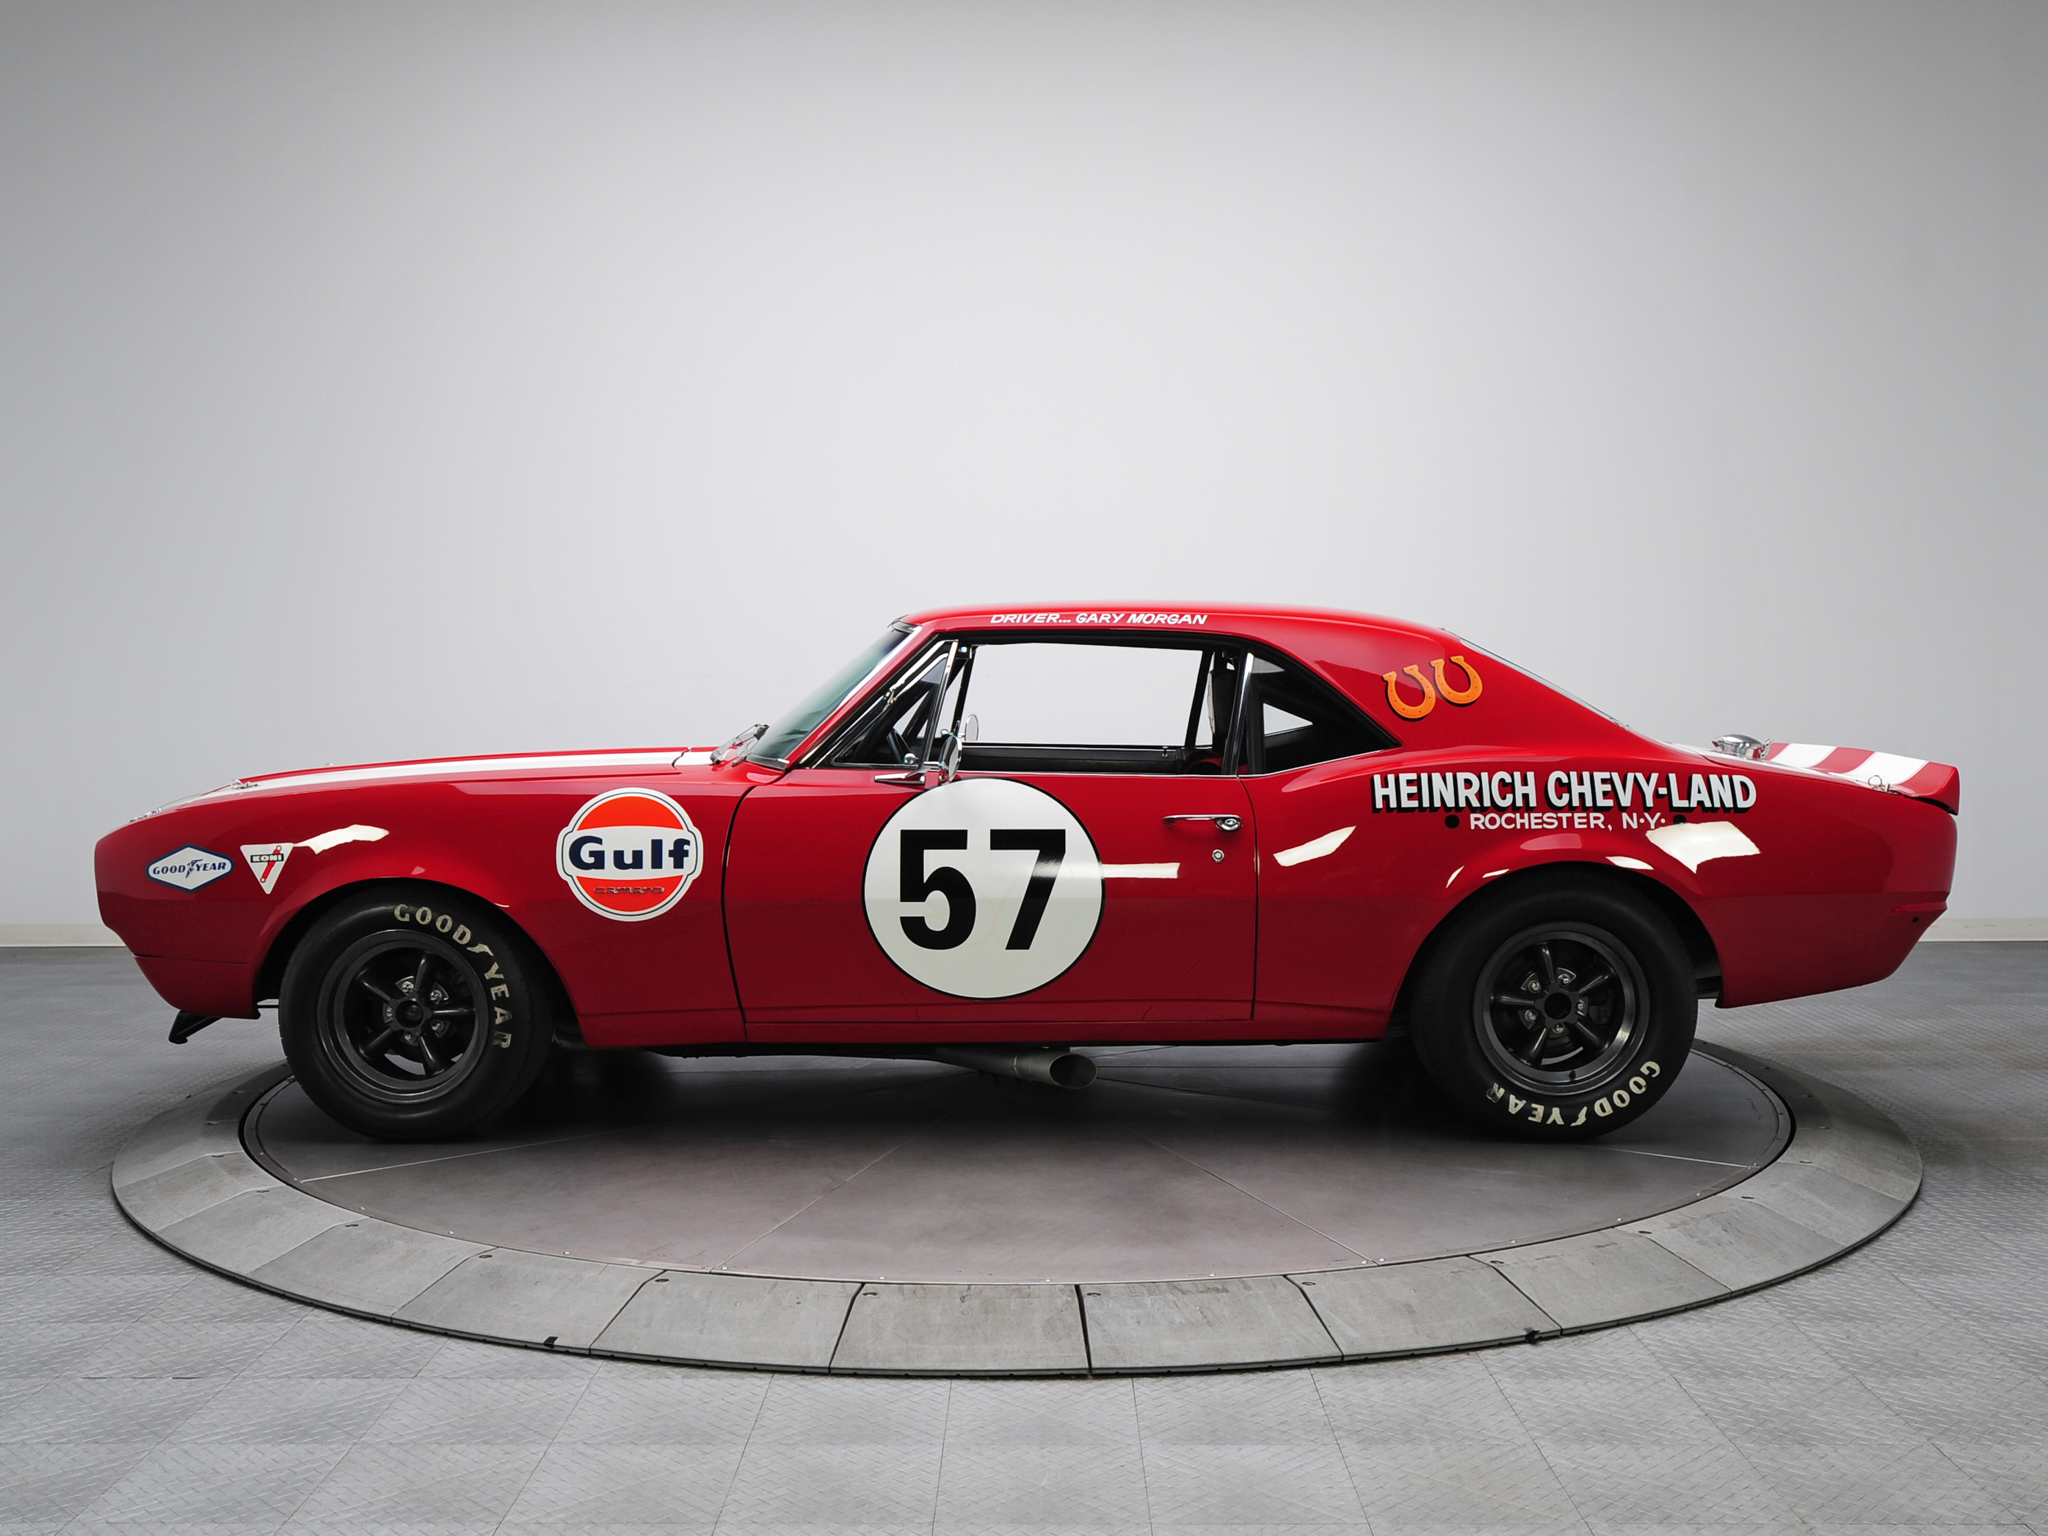 Camaro Trans Am >> 1967 Chevrolet Camaro Z-28 Pre-production Trans-Am Race Car racing muscle classic hot rod rods h ...